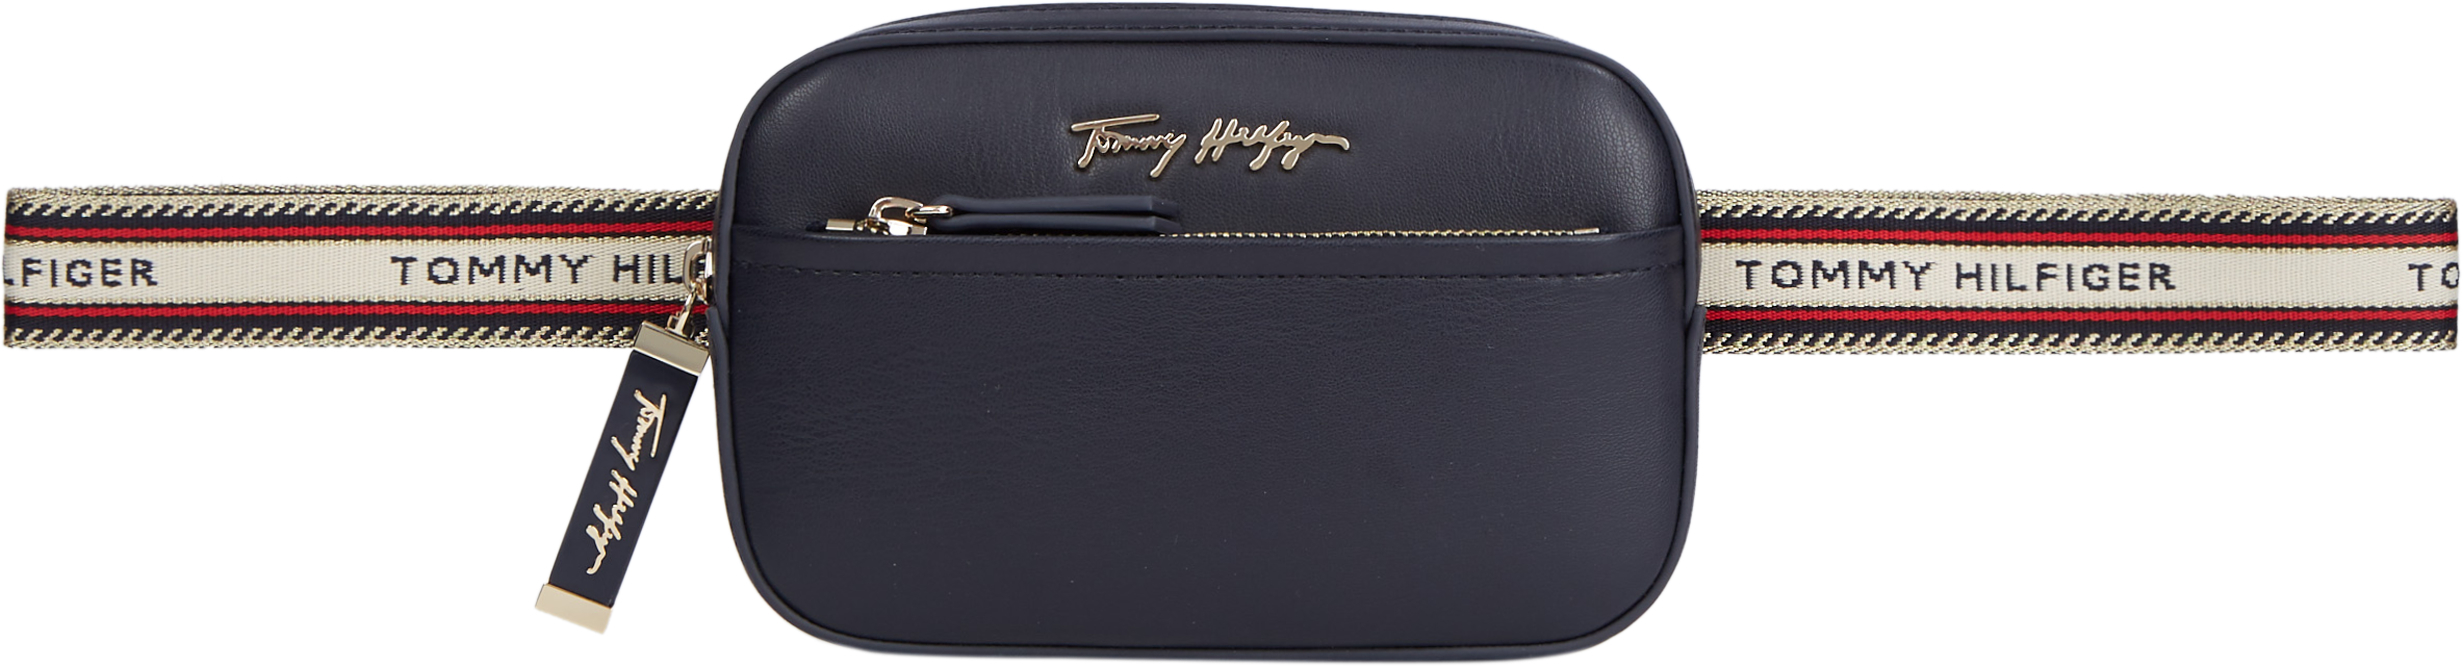 Tommy Hilfiger ICONIC TOMMY BUMBAG